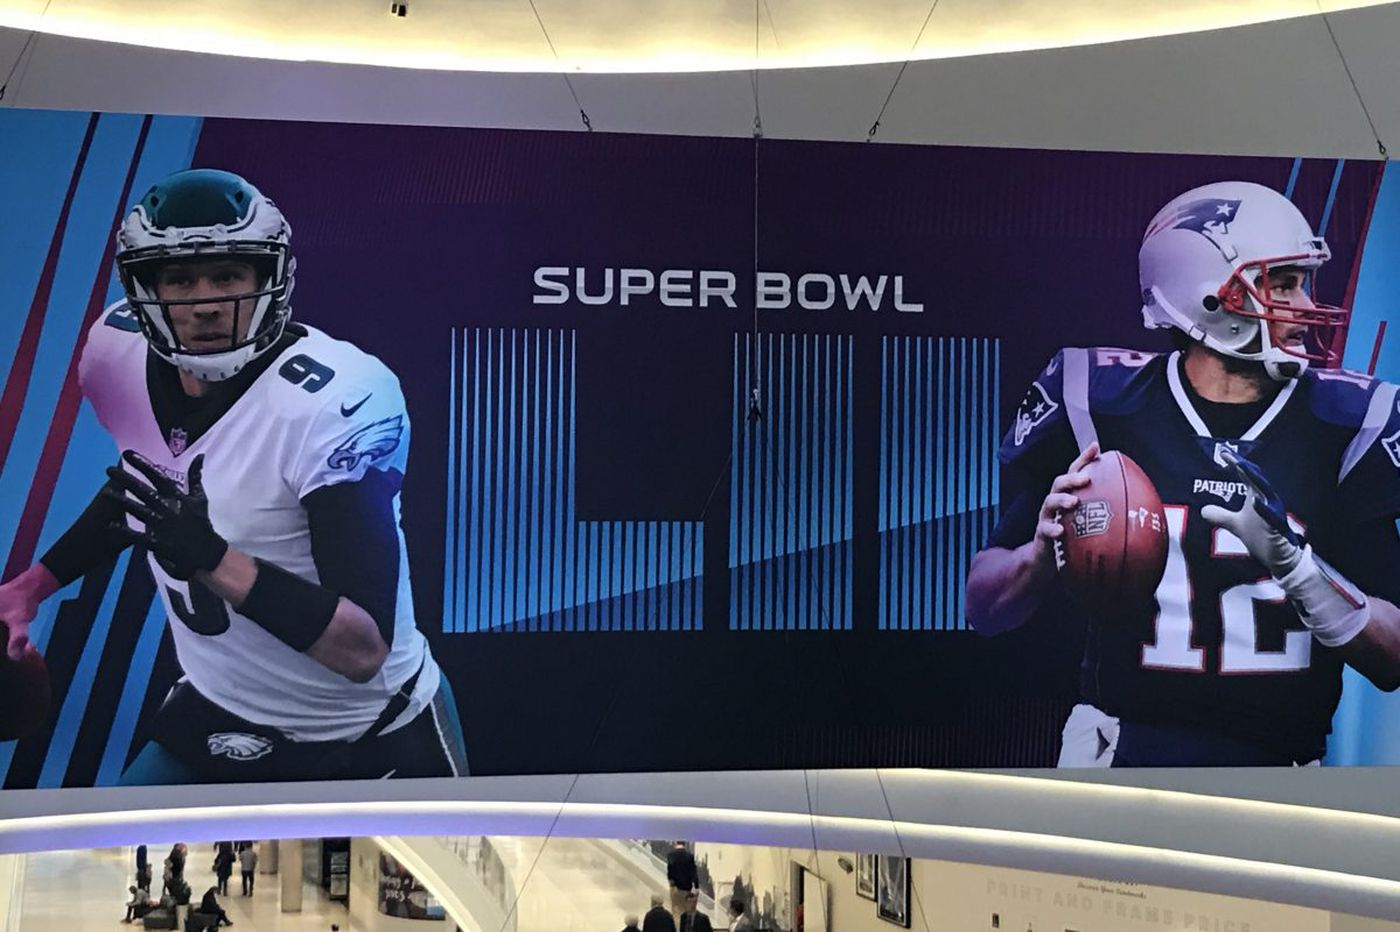 Don't cringe at the Foles-Brady comps. It's what makes this Super Bowl great | David Murphy